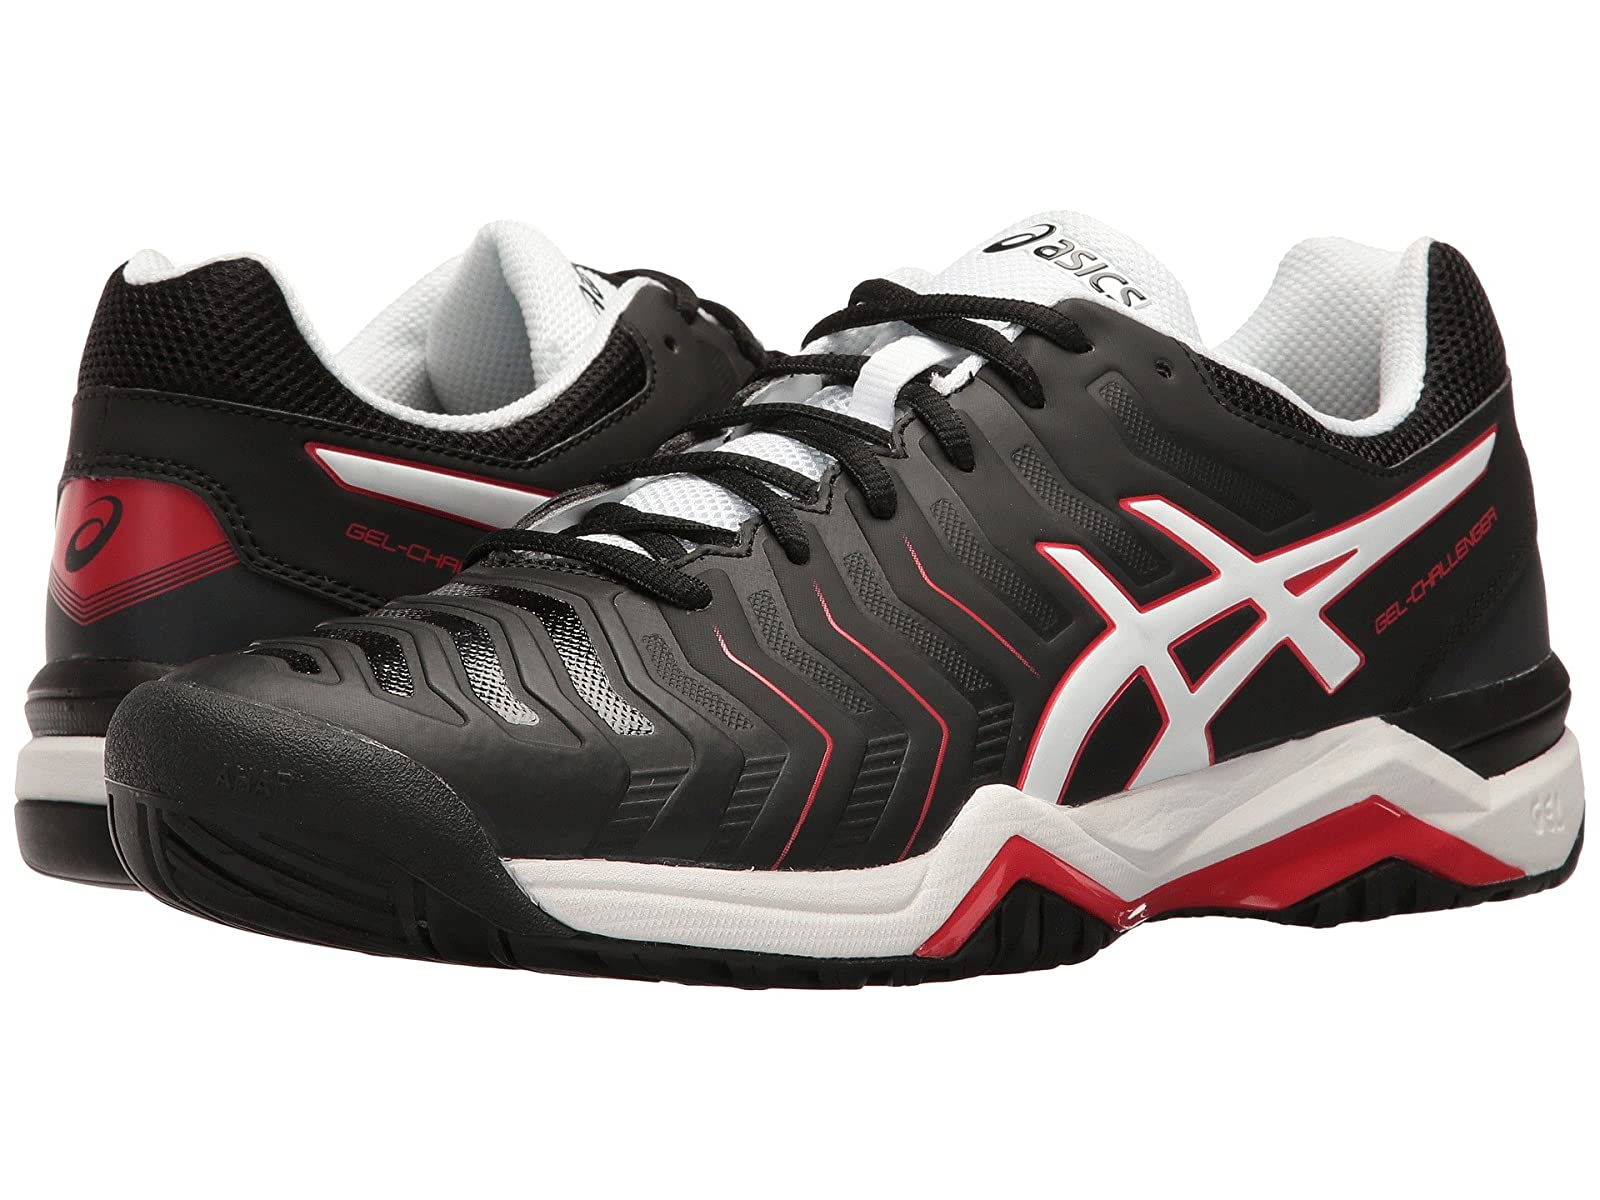 ASICS Gel-Challenger 11Cheap and distinctive eye-catching shoes